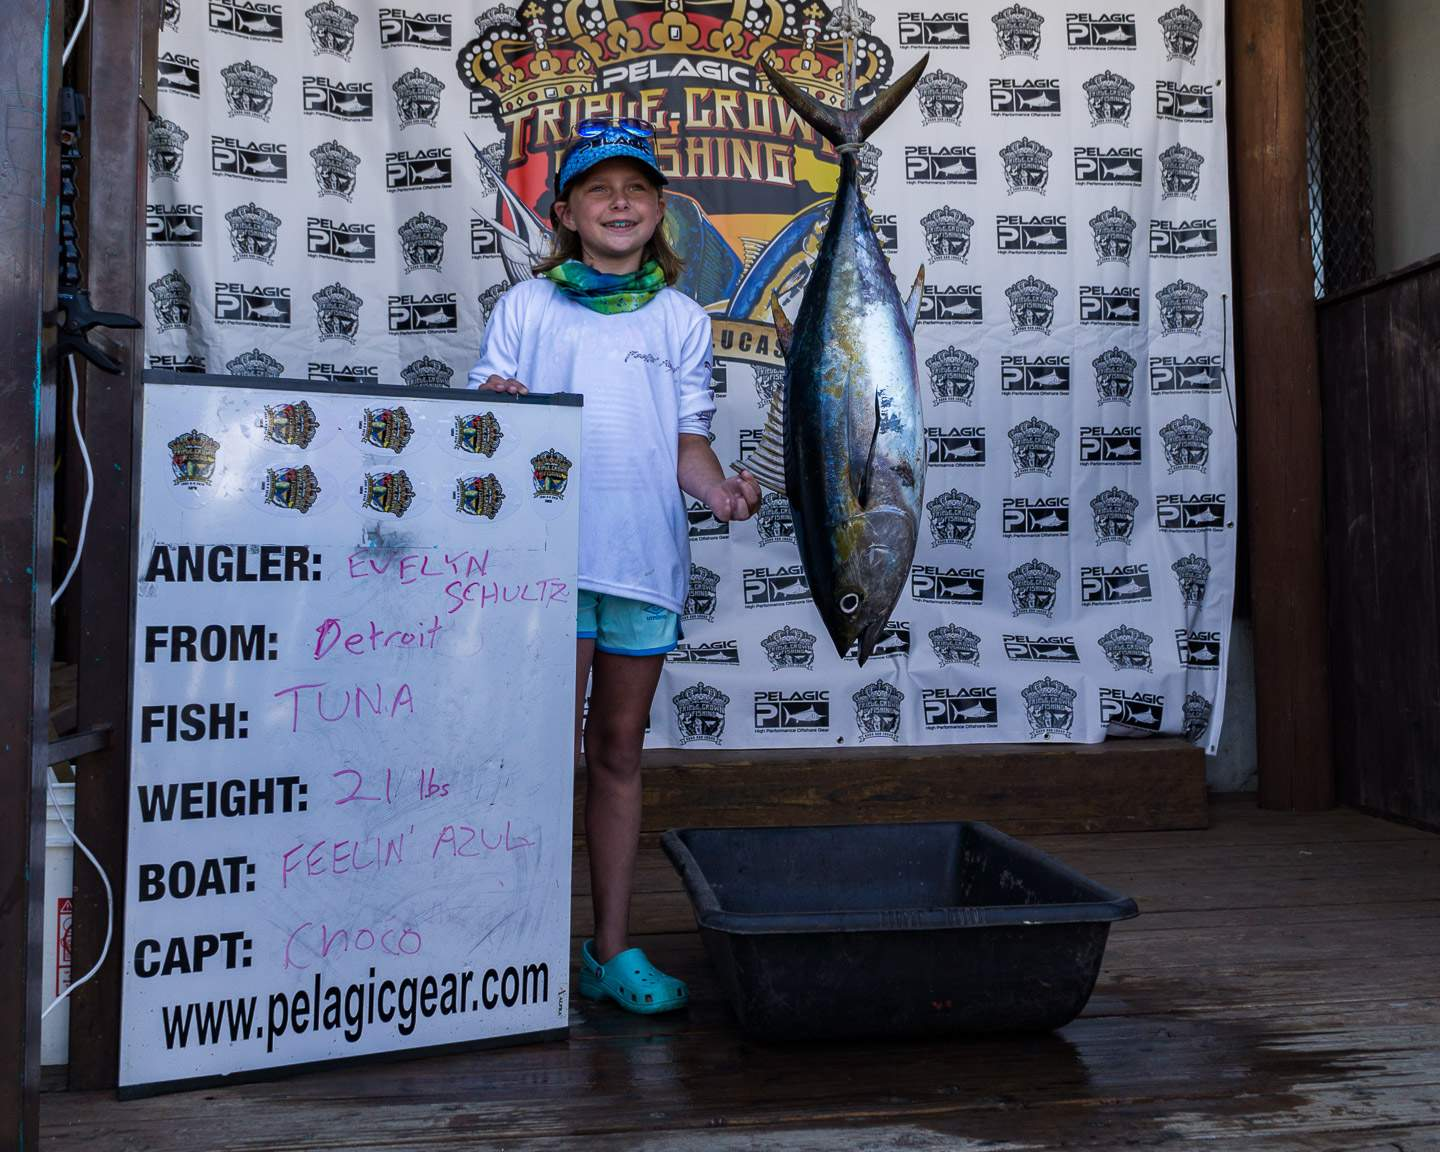 2019 Pelagic Triple Crown Cabo Feelin Azul Tuna